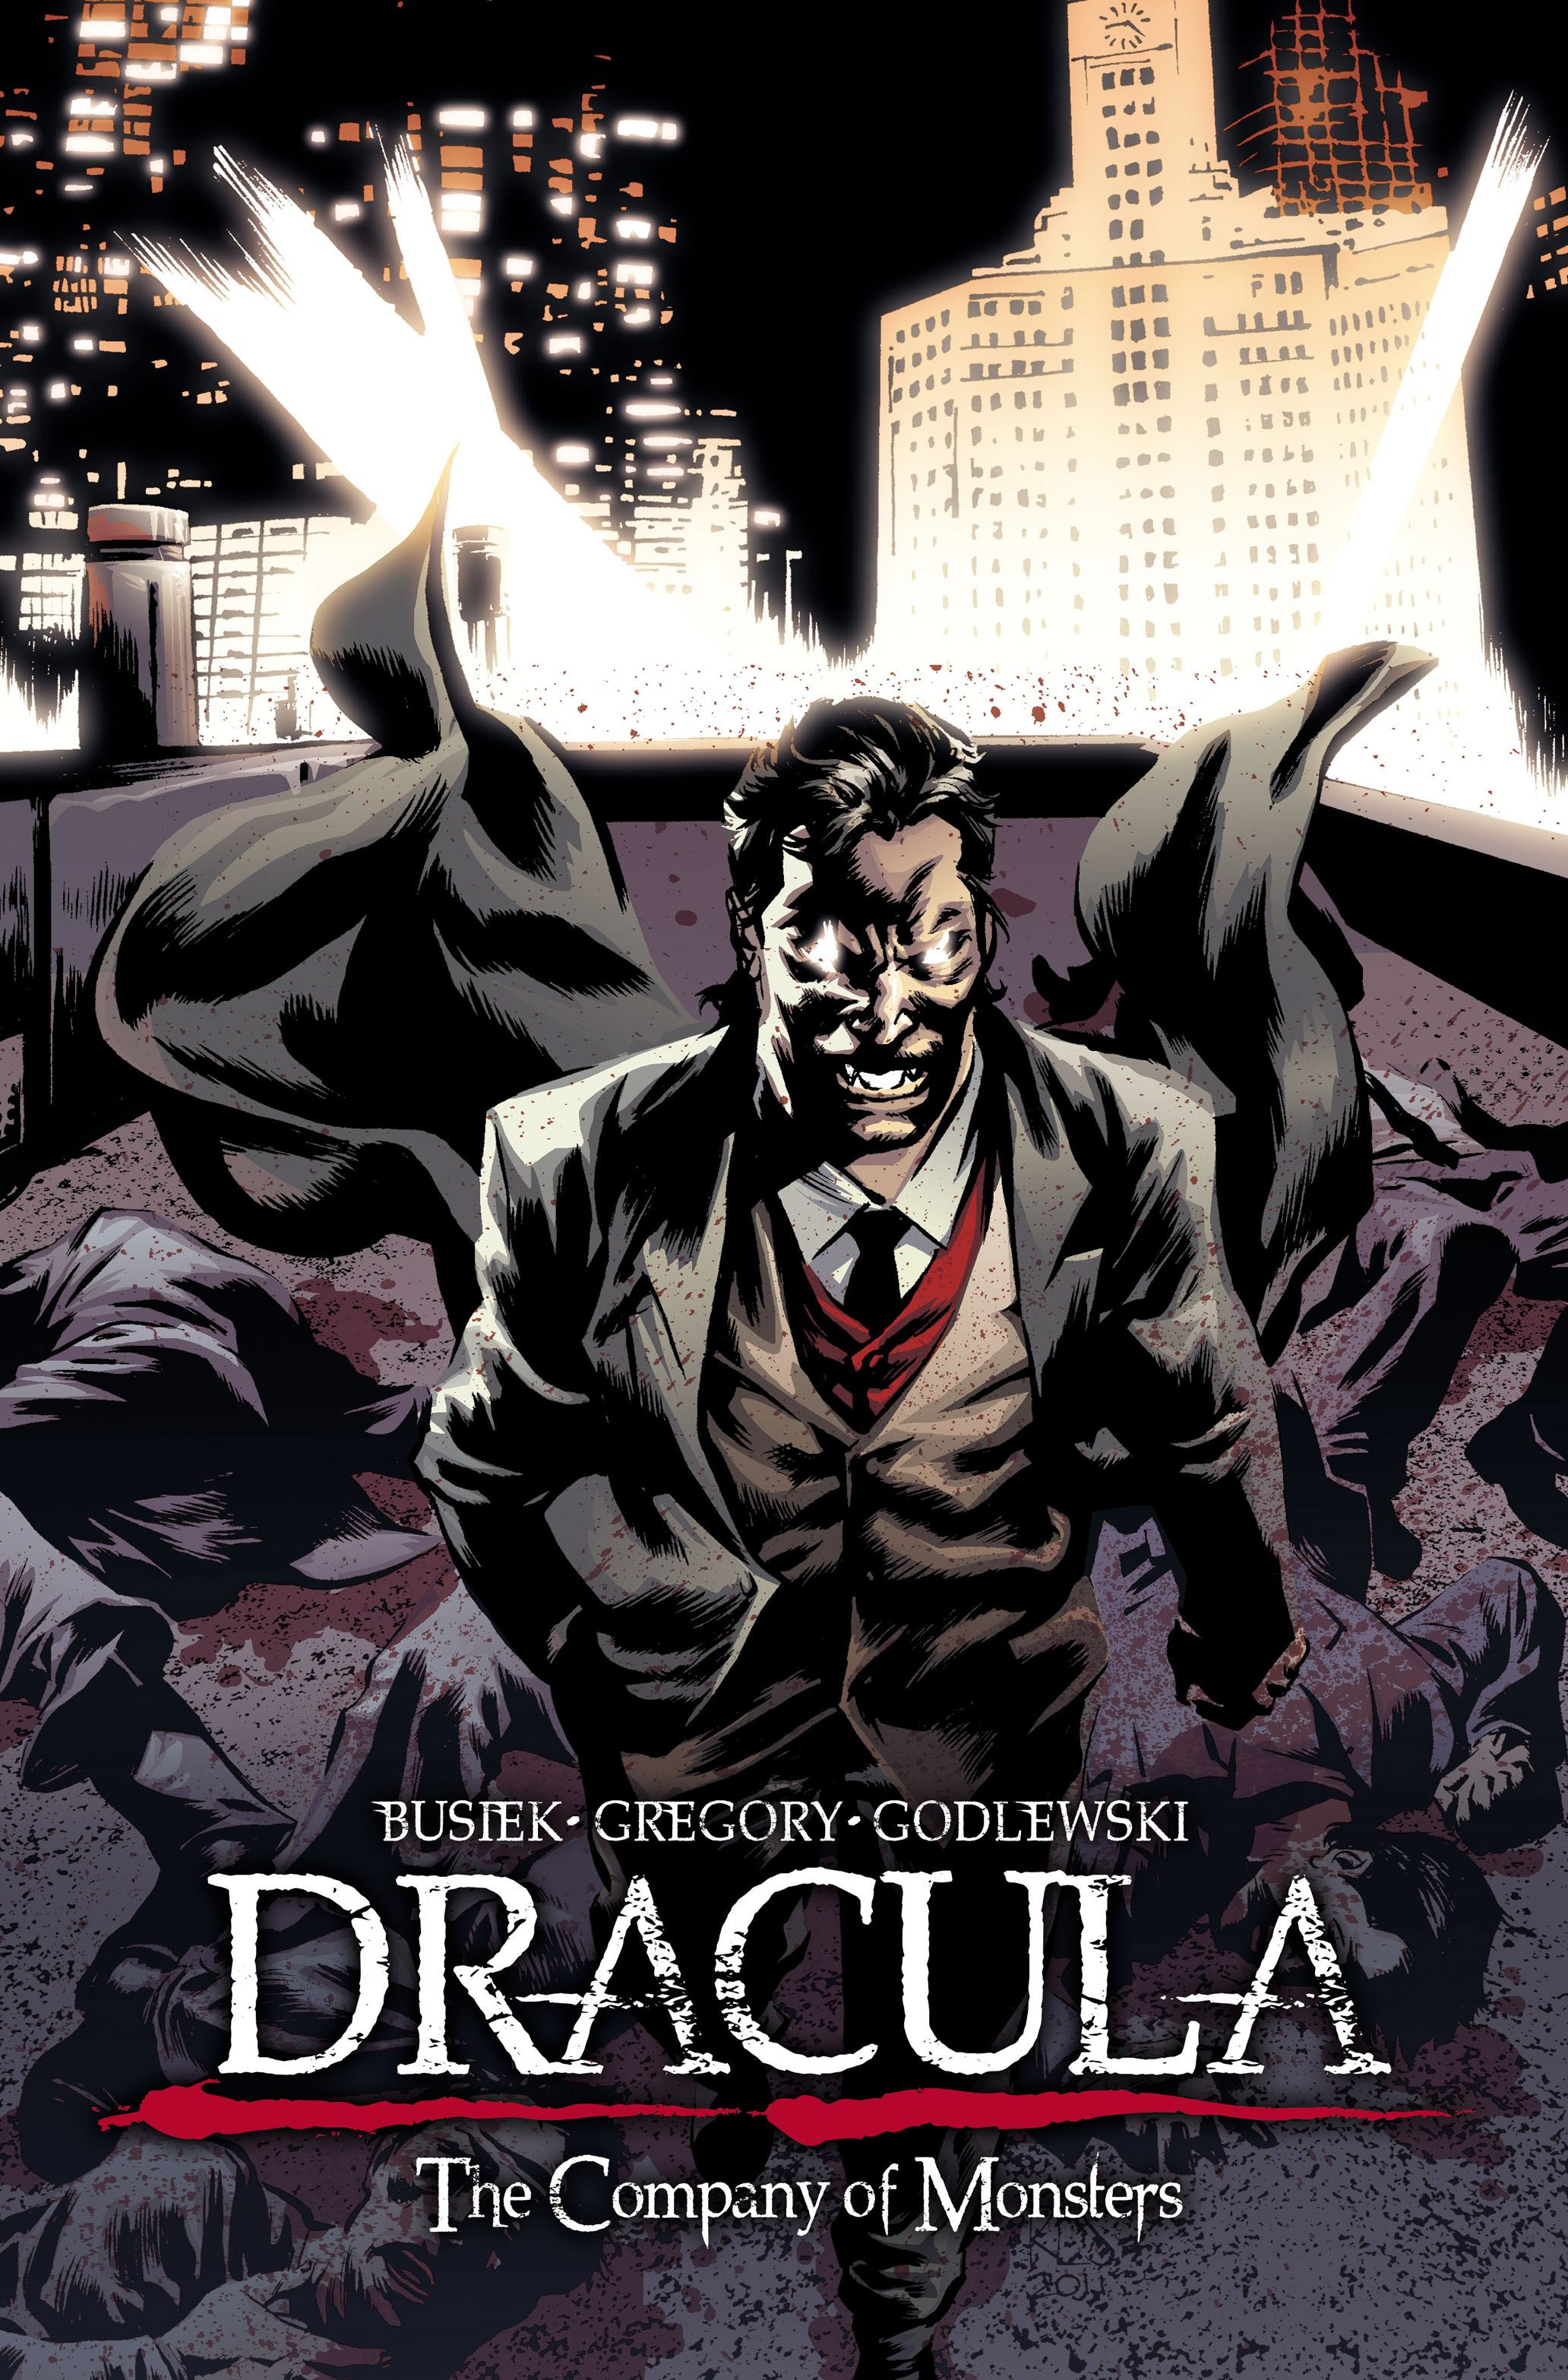 Dracula the company of monsters vol 3 9781608860586 hr